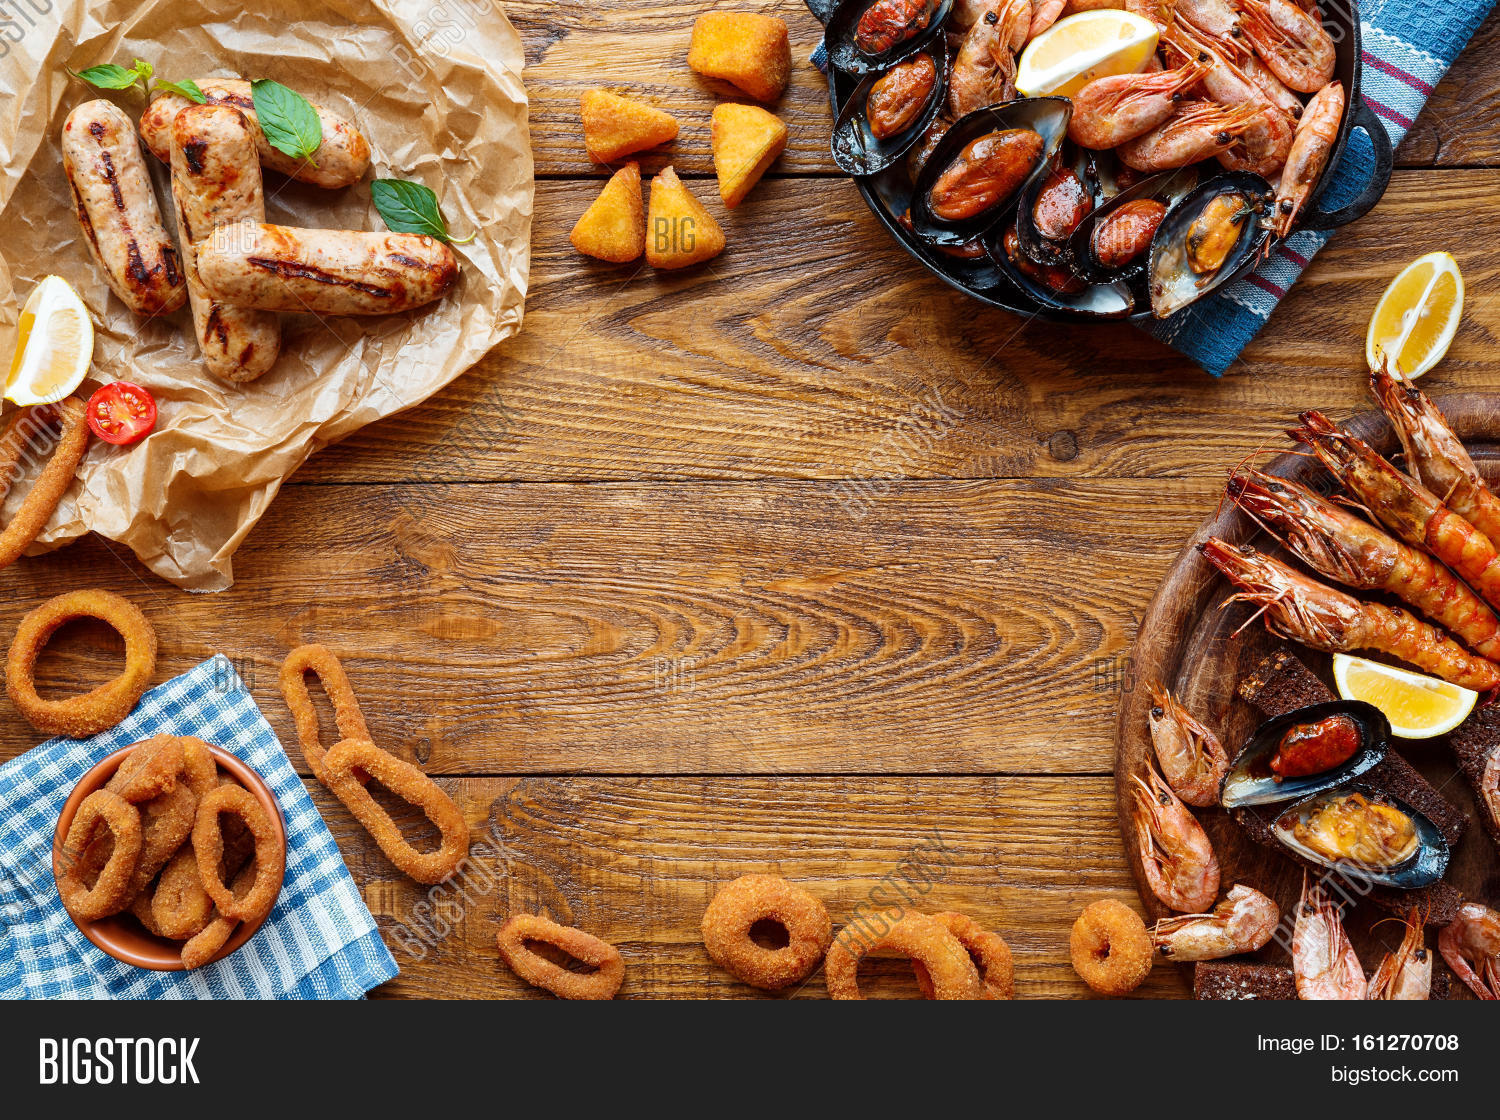 Seafood Platter Meat Image Amp Photo Free Trial Bigstock